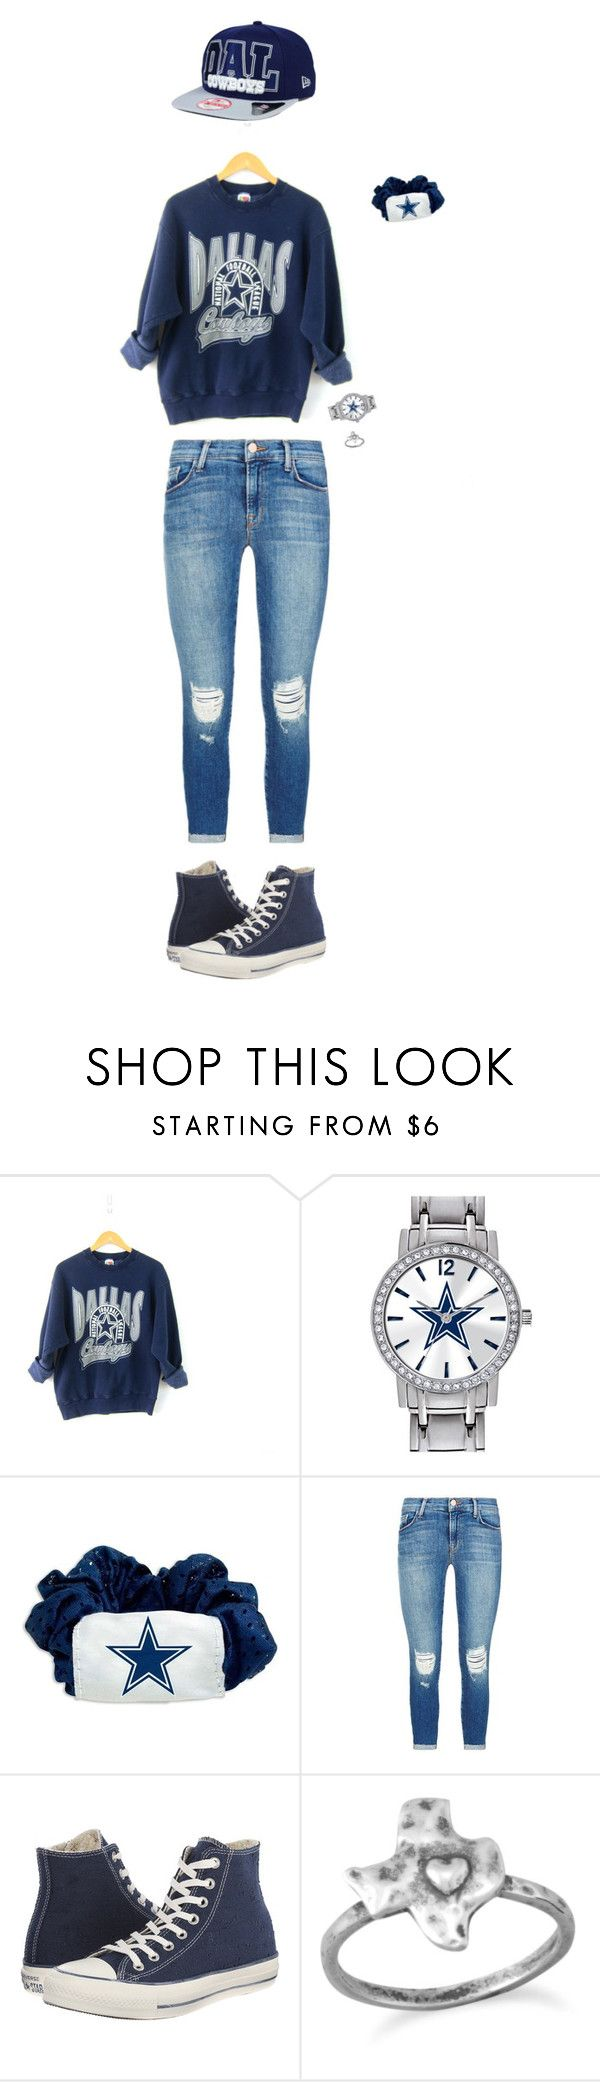 """This was our last Super Bowl hope of Texas, now I'm just watching it for Beyoncé"" by nml3105 ❤ liked on Polyvore featuring Game Time, Little Earth, J Brand, Converse, New Era, women's clothing, women, female, woman and misses"